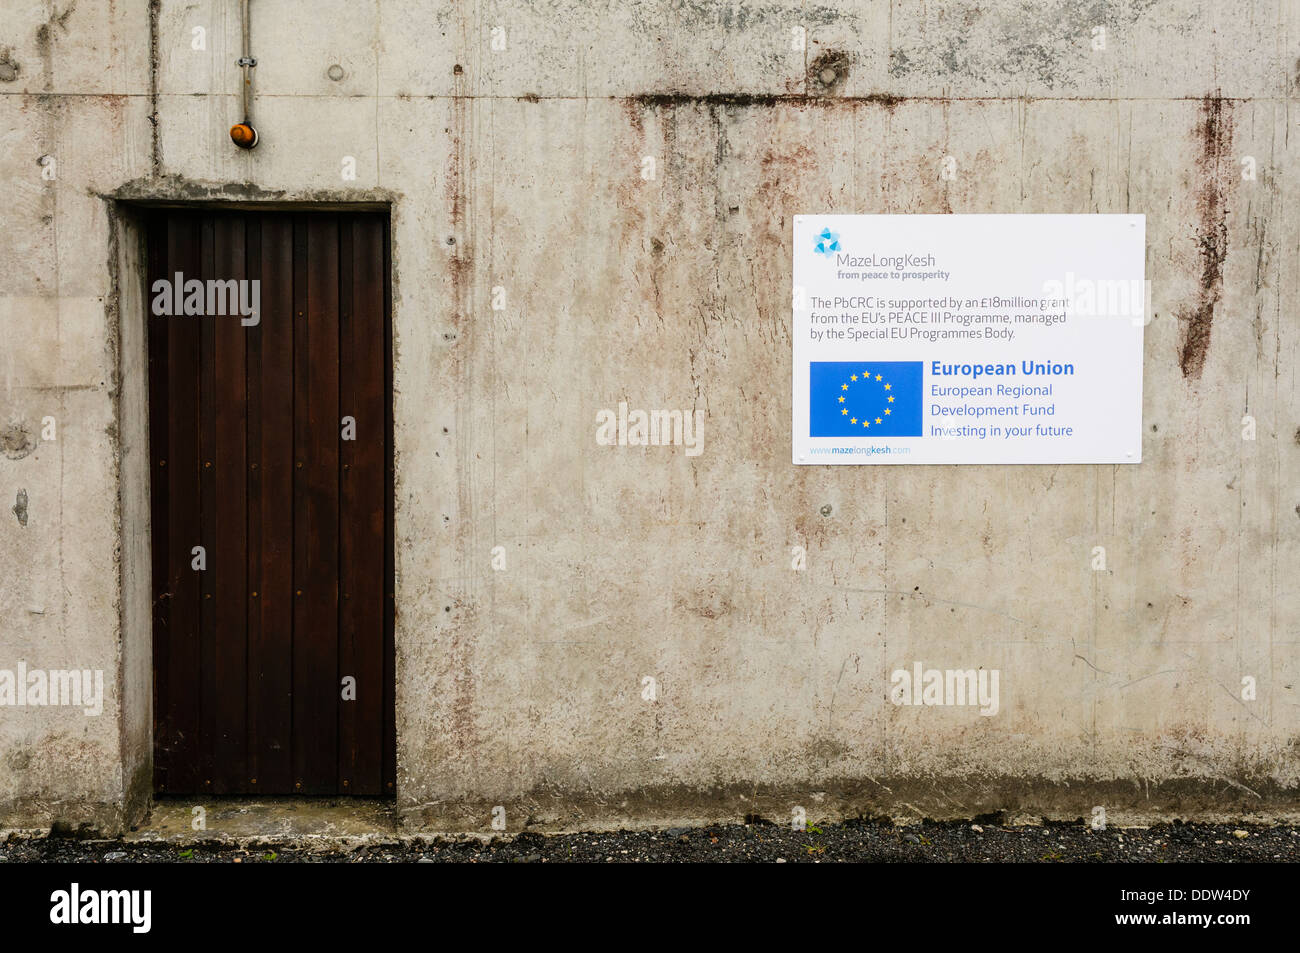 Sign at the Peace building and Conflict Resolution Centre (PbCRC) at the Maze, which has been cancelled by Peter - Stock Image